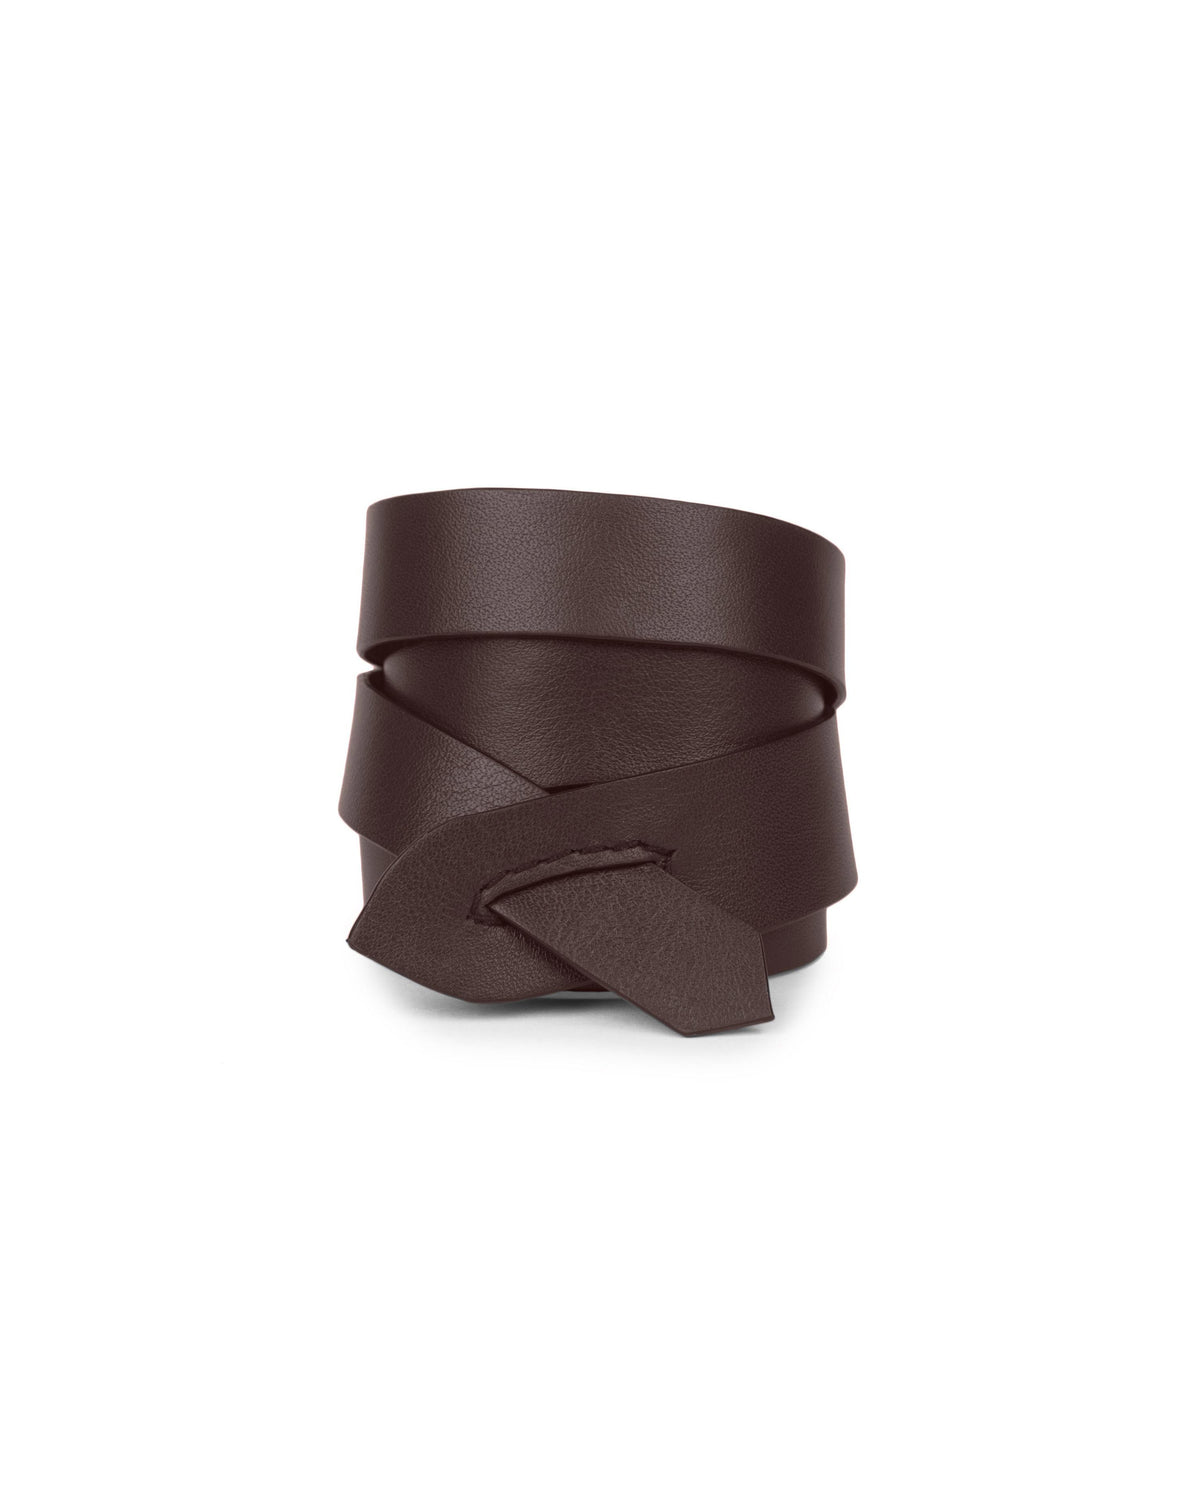 GIRONA WRIST WRAP in Chocolate Napa